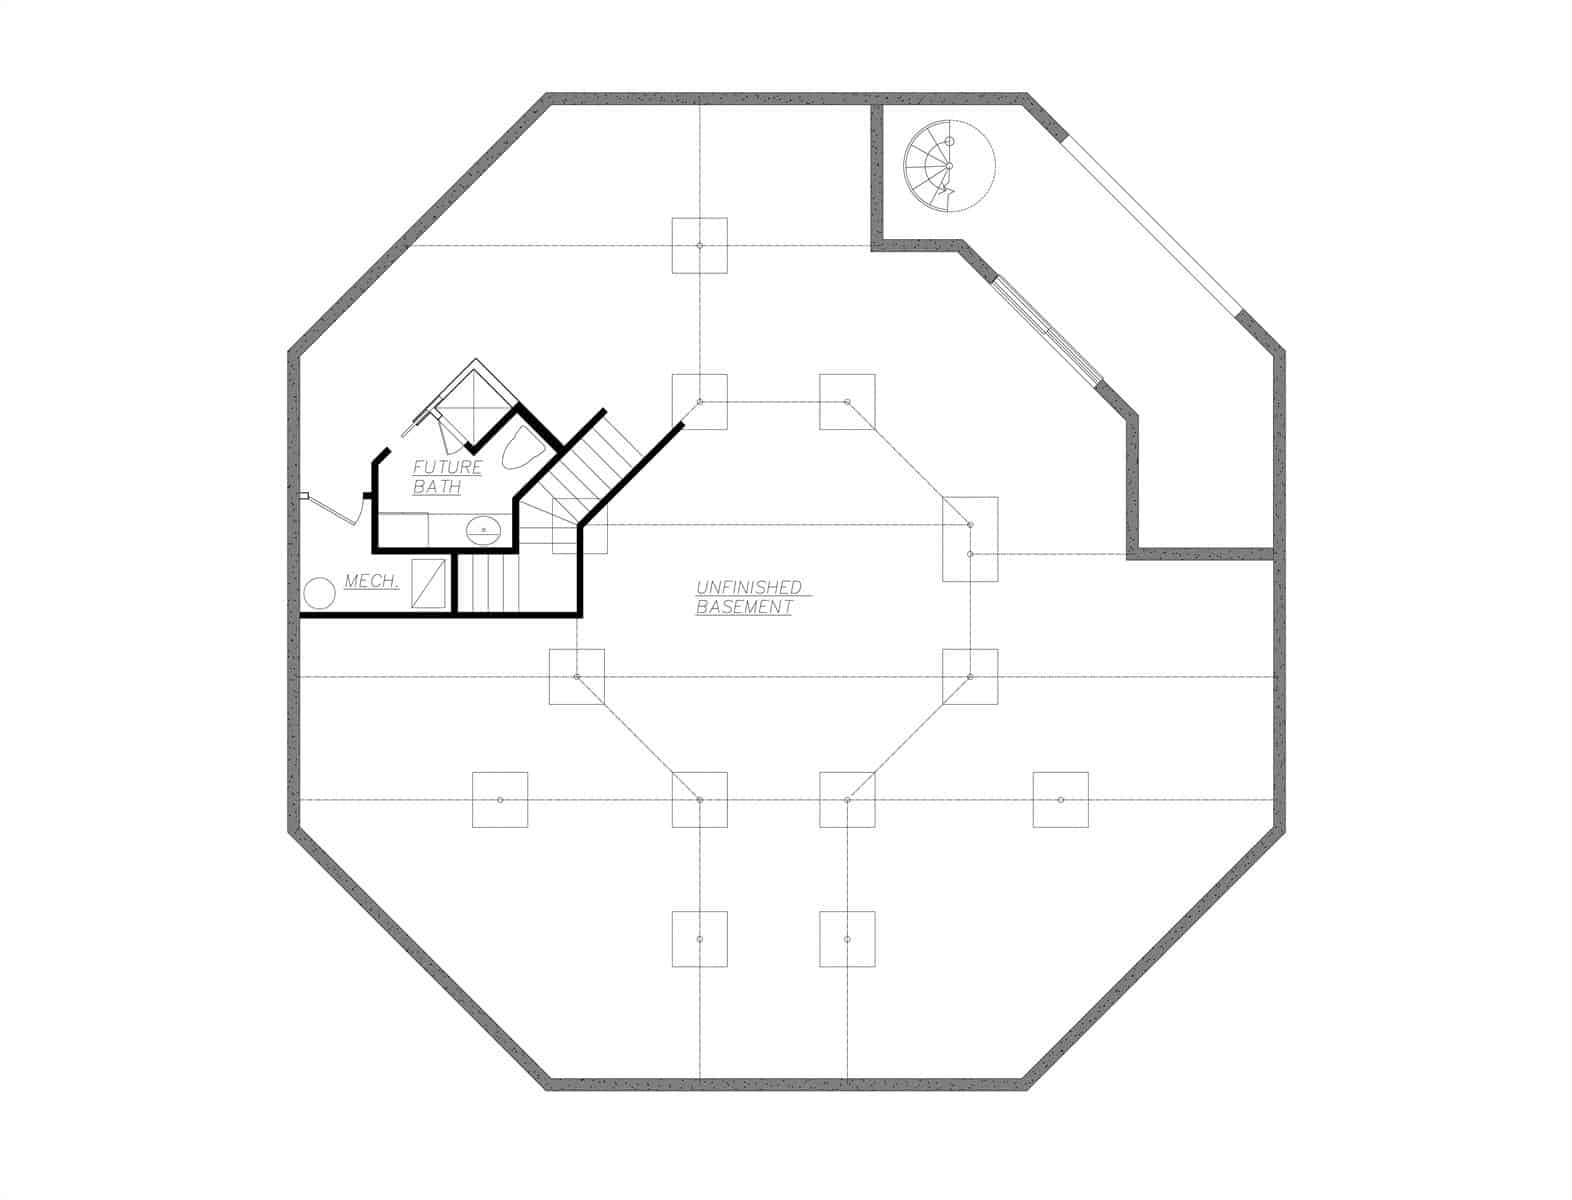 Basement floor plan with future bath, mechanical room, and unfinished spaces.